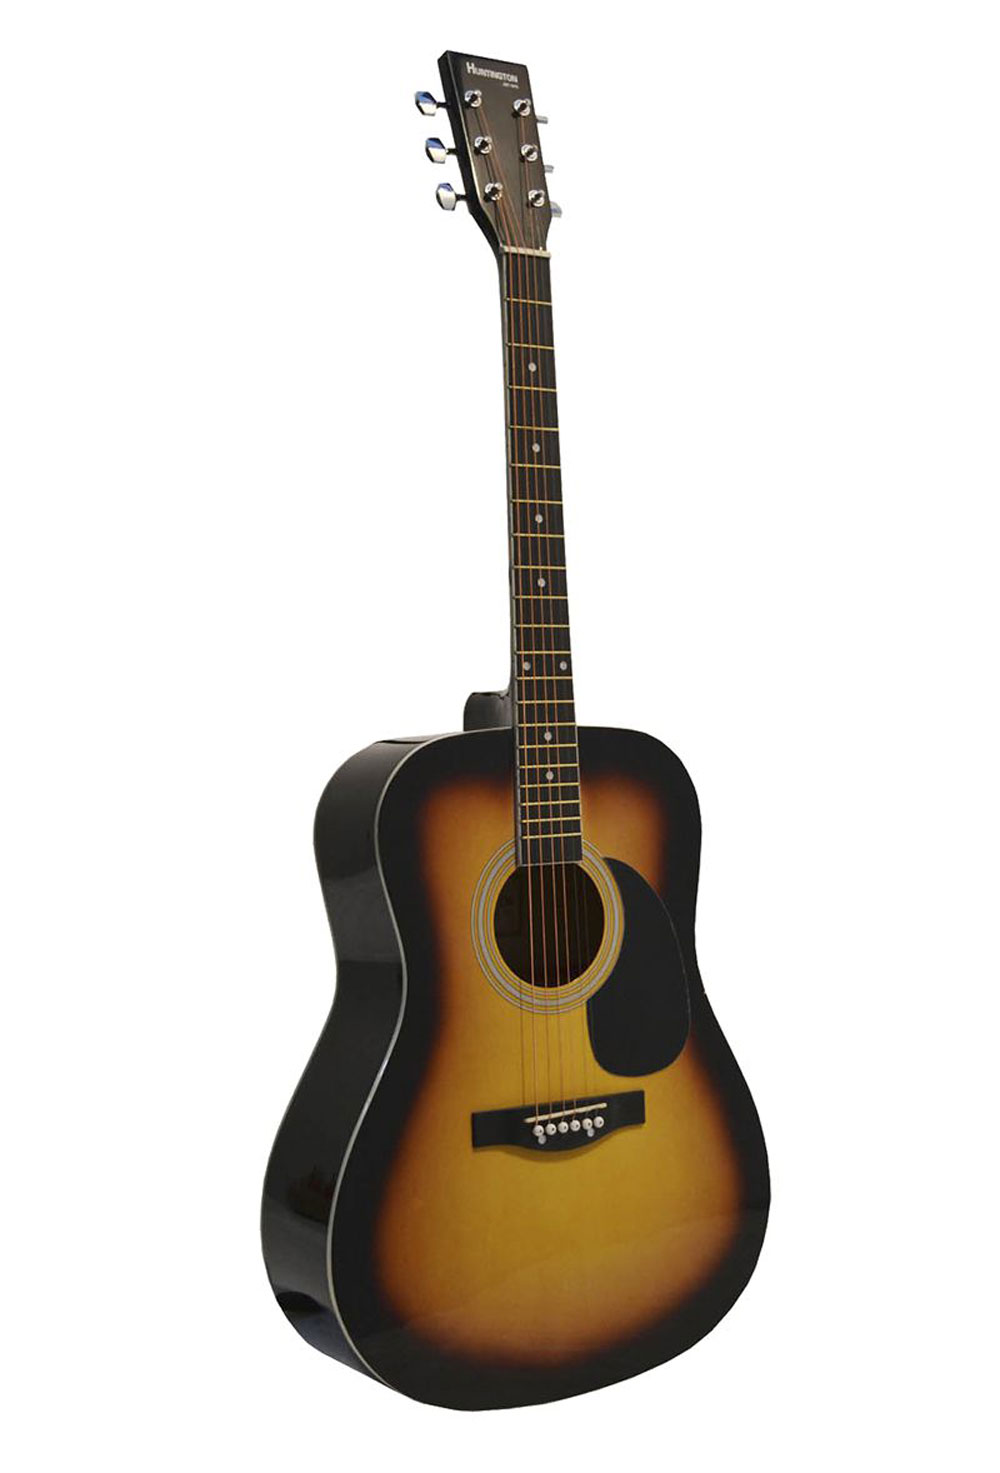 Meuble Rangement Guitare Buy Guitare Acoustique Dreadnought Huntington De Bridgecraft Explosion De Tabac For Cad 127 99 Toys R Us Canada